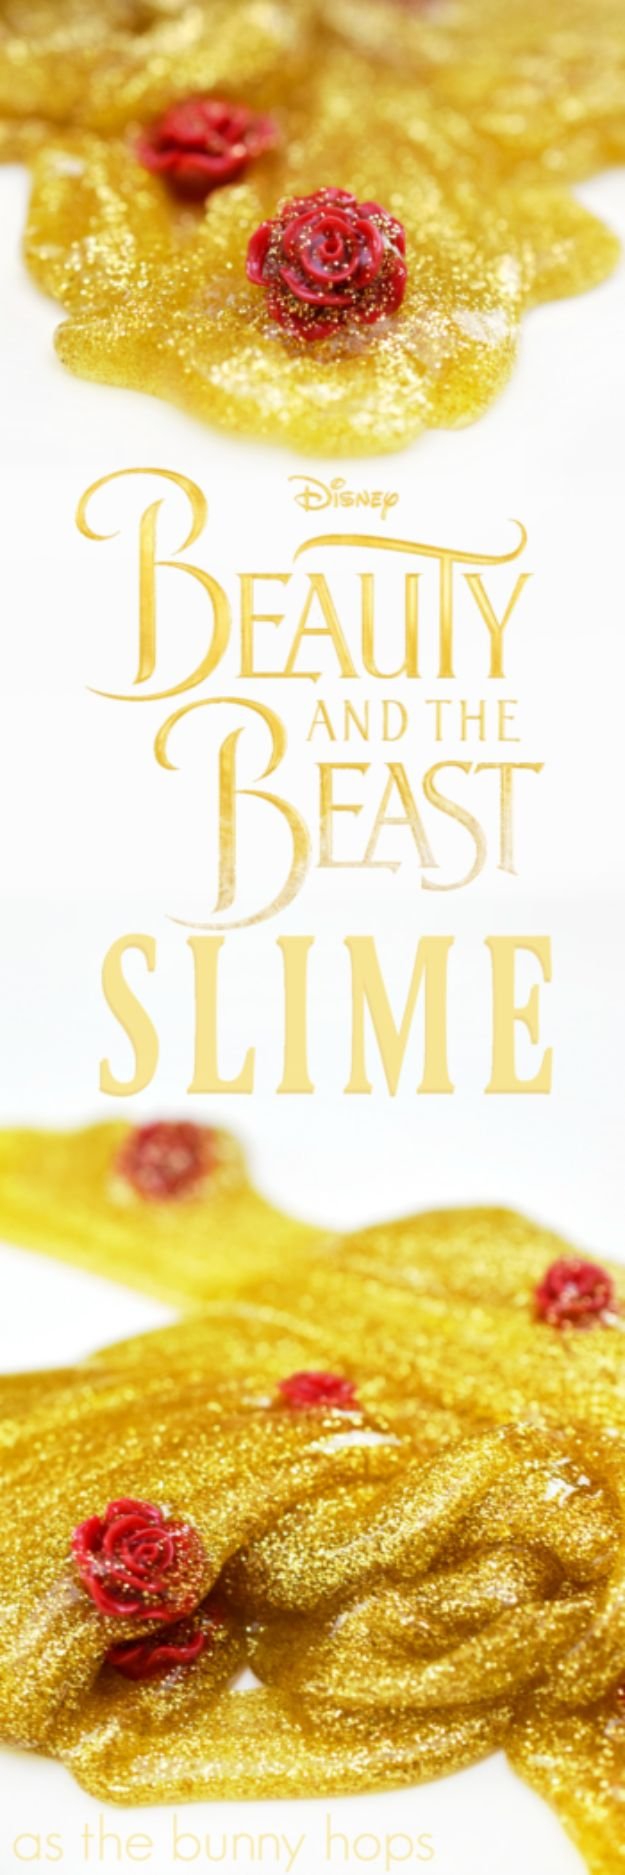 Best DIY Slime Recipes - Beauty And The Beast Slime- Cool and Easy Slime Recipe and Tutorials - Ideas Without Glue, Without Borax, For Kids, With Liquid Starch, Cornstarch and Laundry Detergent - How to Make Slime at Home - Fun Crafts and DIY Projects for Teens, Kids, Teenagers and Teens - Galaxy and Glitter Slime, Edible Slime, Rainbow Colored Slime, Shaving Cream recipes and more fun crafts and slimes #slimerecipes #slime #diyslime #teencrafts